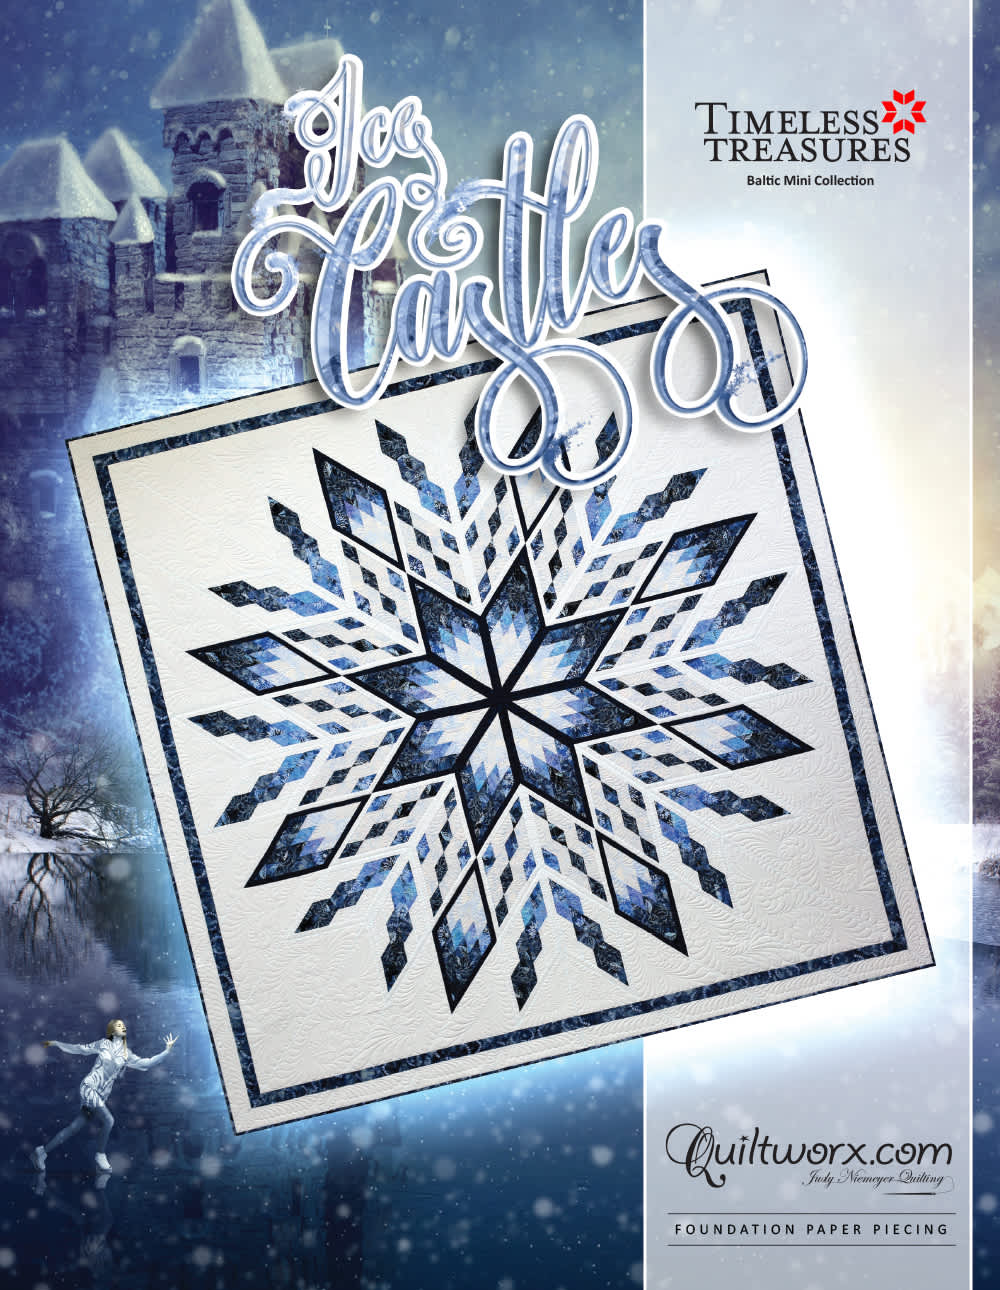 Ice Castles Special Edition